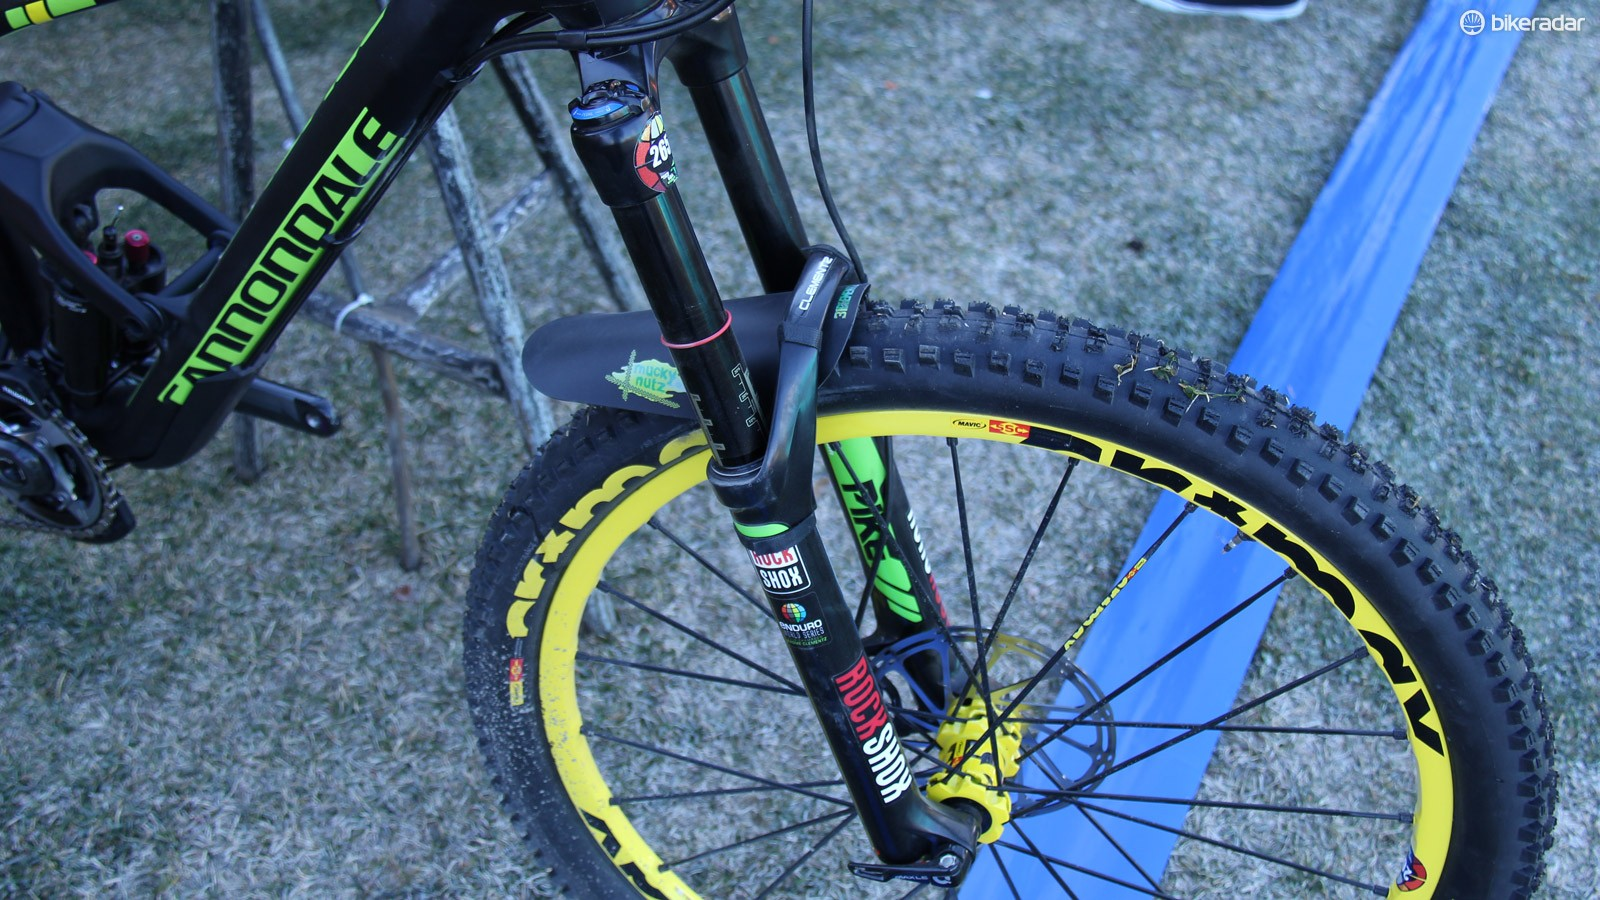 The top-end production Jekyll 27.5 comes equipped with the new Lefty Supermax fork, Clementz, as a SRAM-sponsored athlete, runs a 160mm RockShox Pike